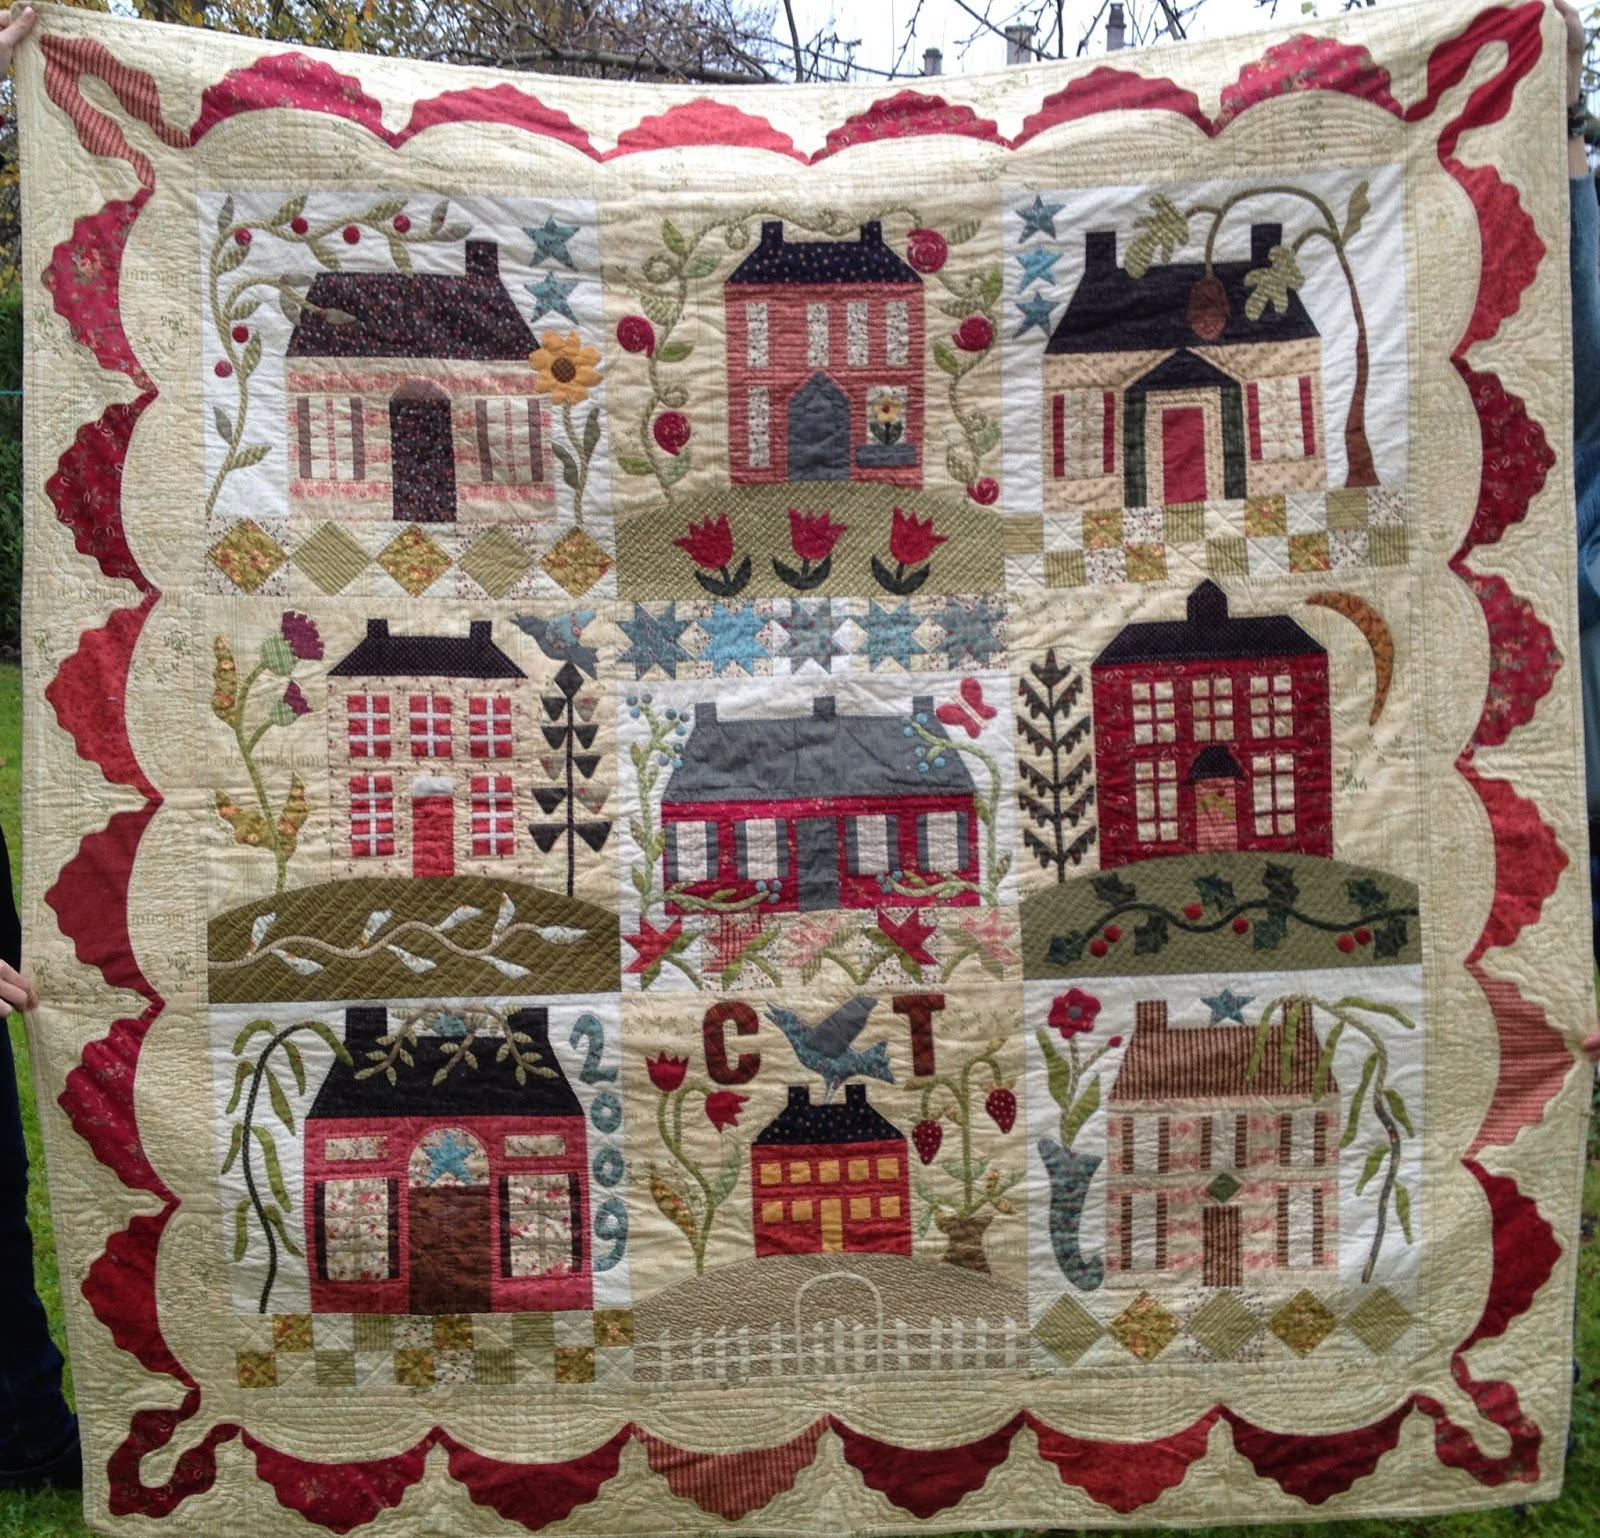 And Sew Forth So Many Great Quilts